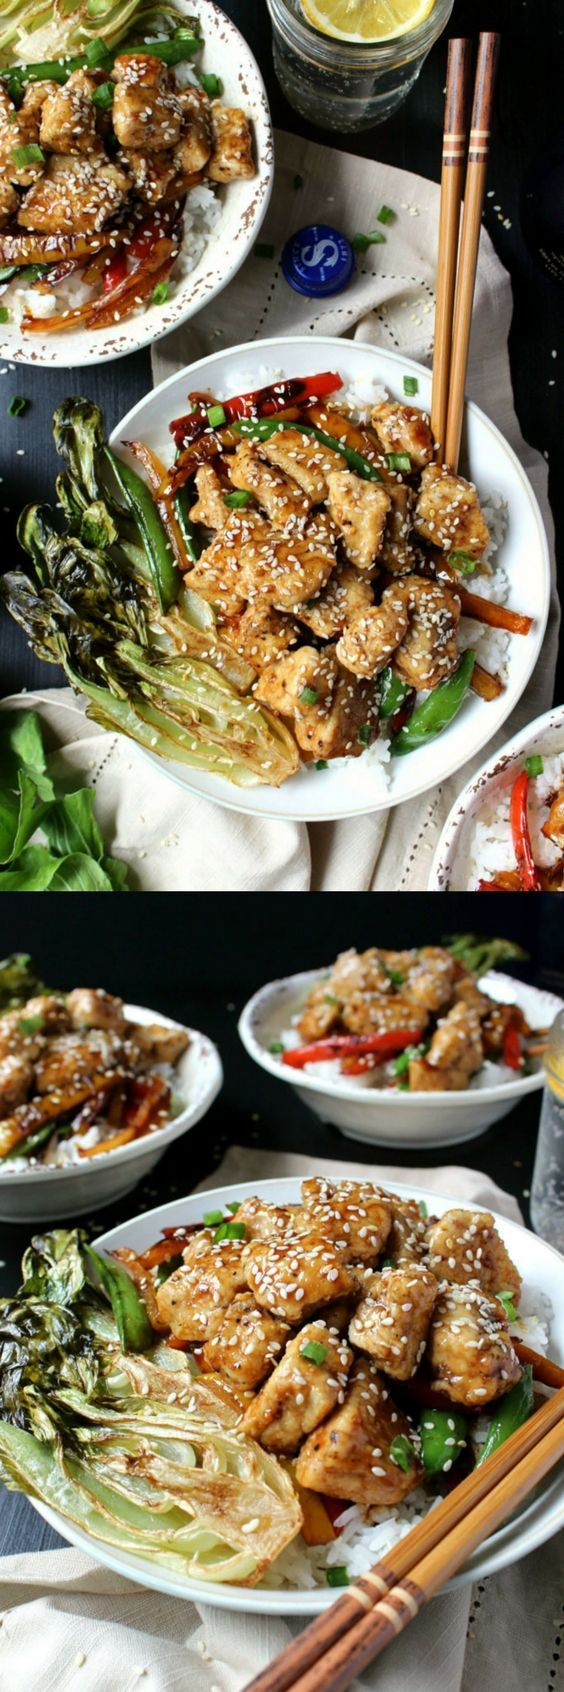 Ready in just 30 minutes and 100% gluten-free, this Honey Hoisin Chicken Stir Fry is not to be missed! Fast, healthy, and delicious for the whole family. | easy weeknight meal, sesame chicken, quick dinner idea